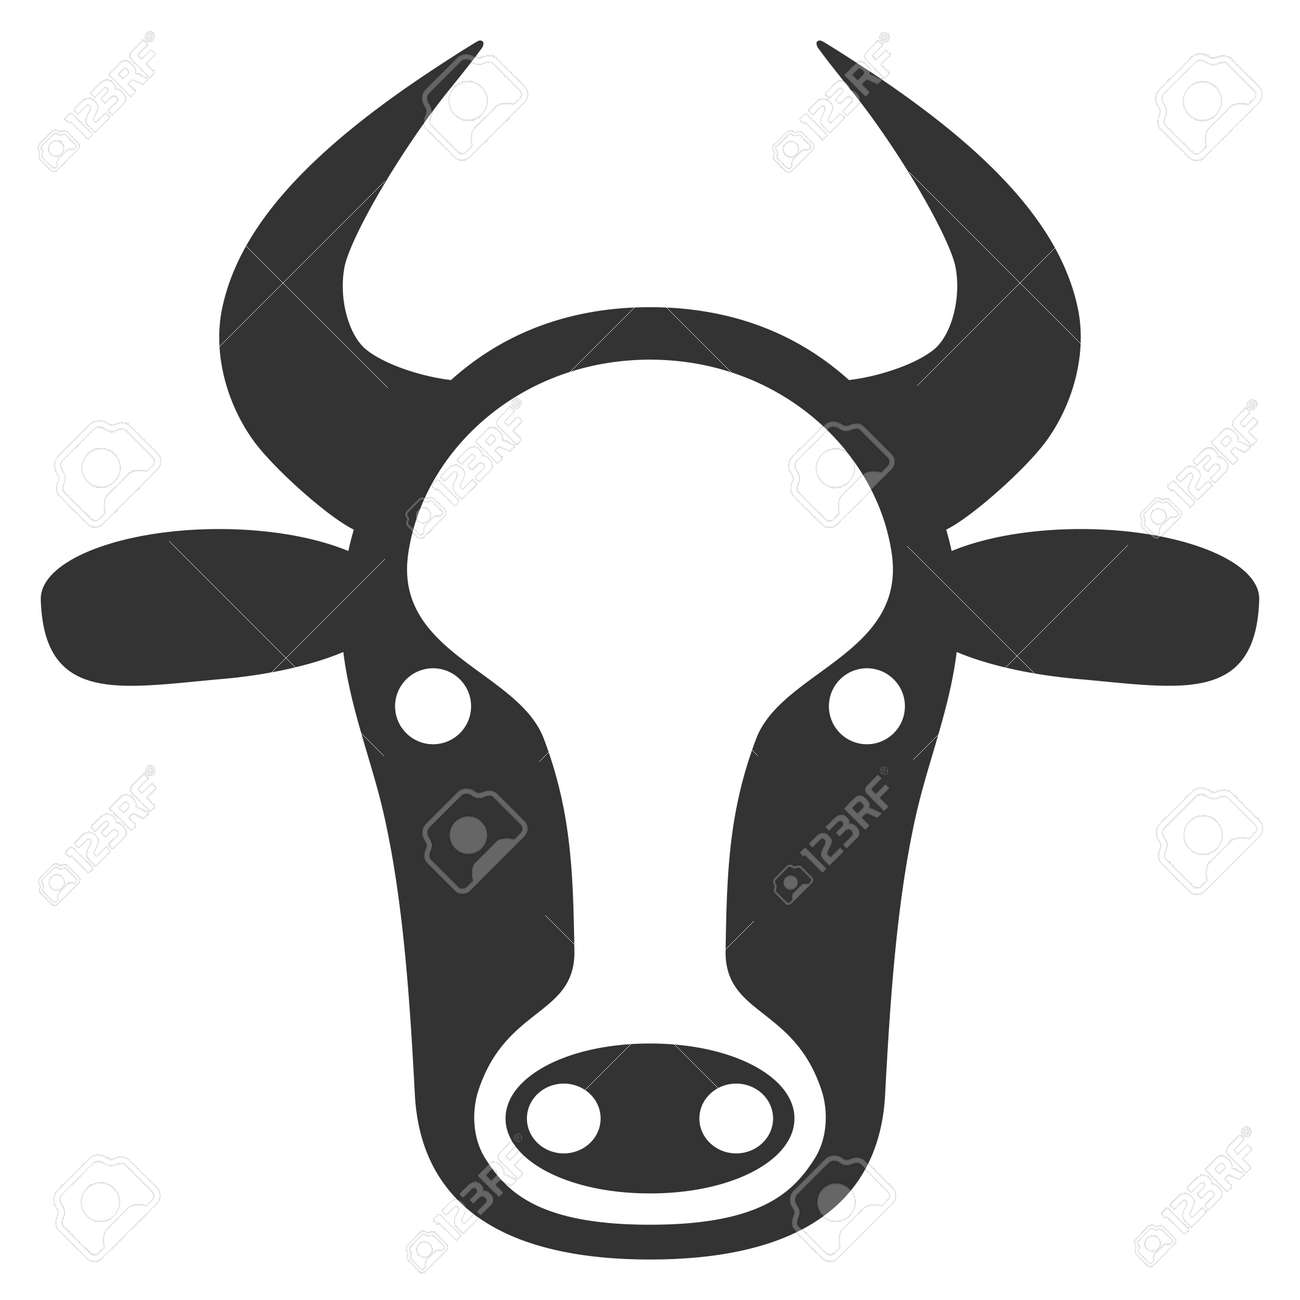 Cow Head Raster Icon Flat Gray Symbol Pictogram Is Isolated